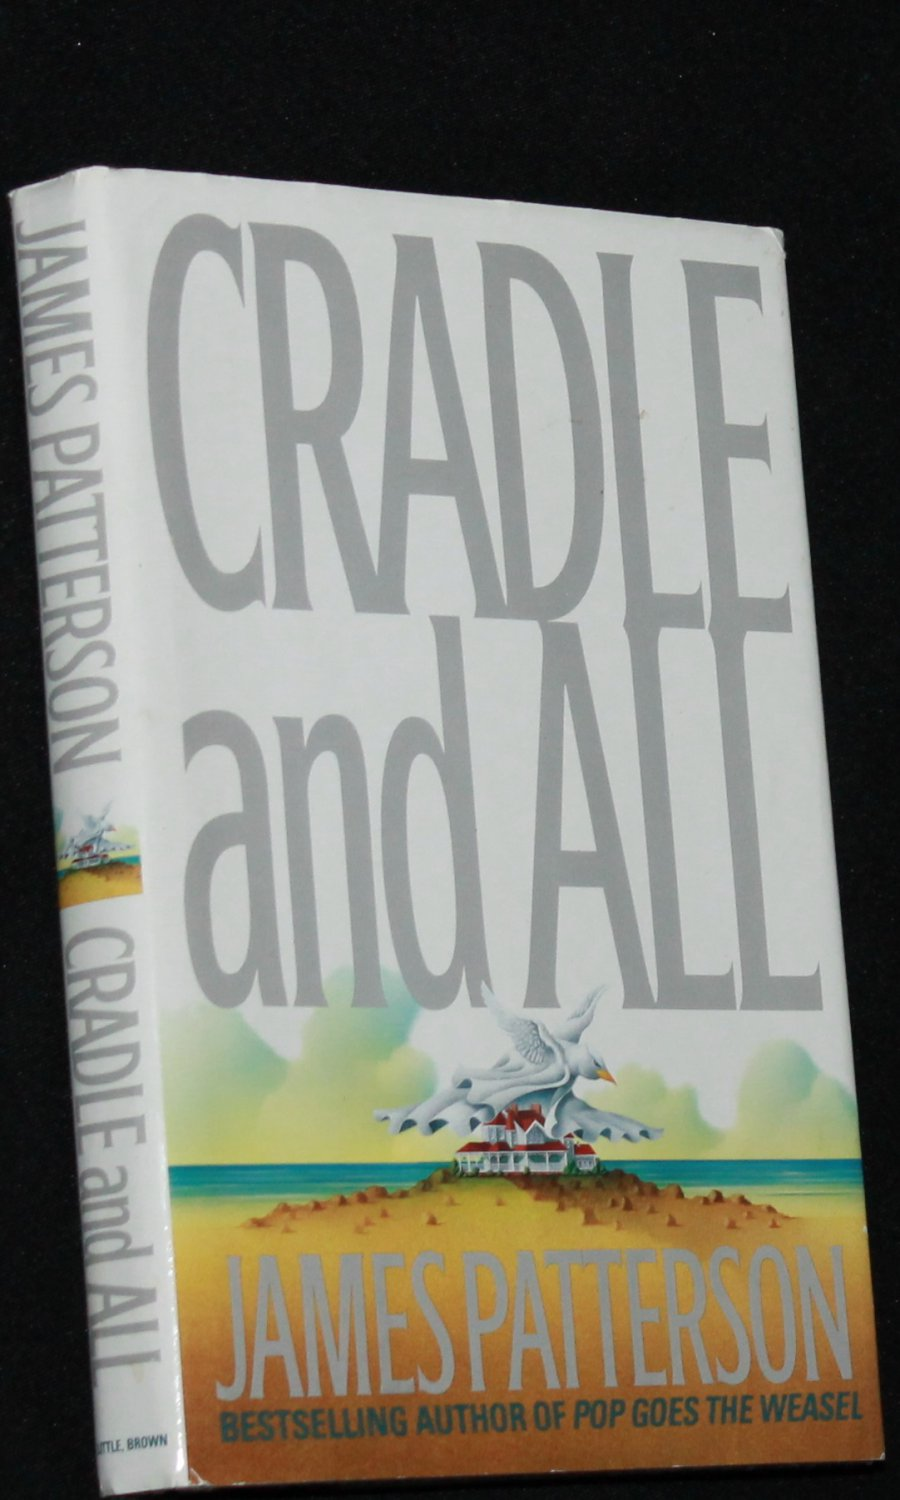 Cradle and All suspense novel book by James Patterson